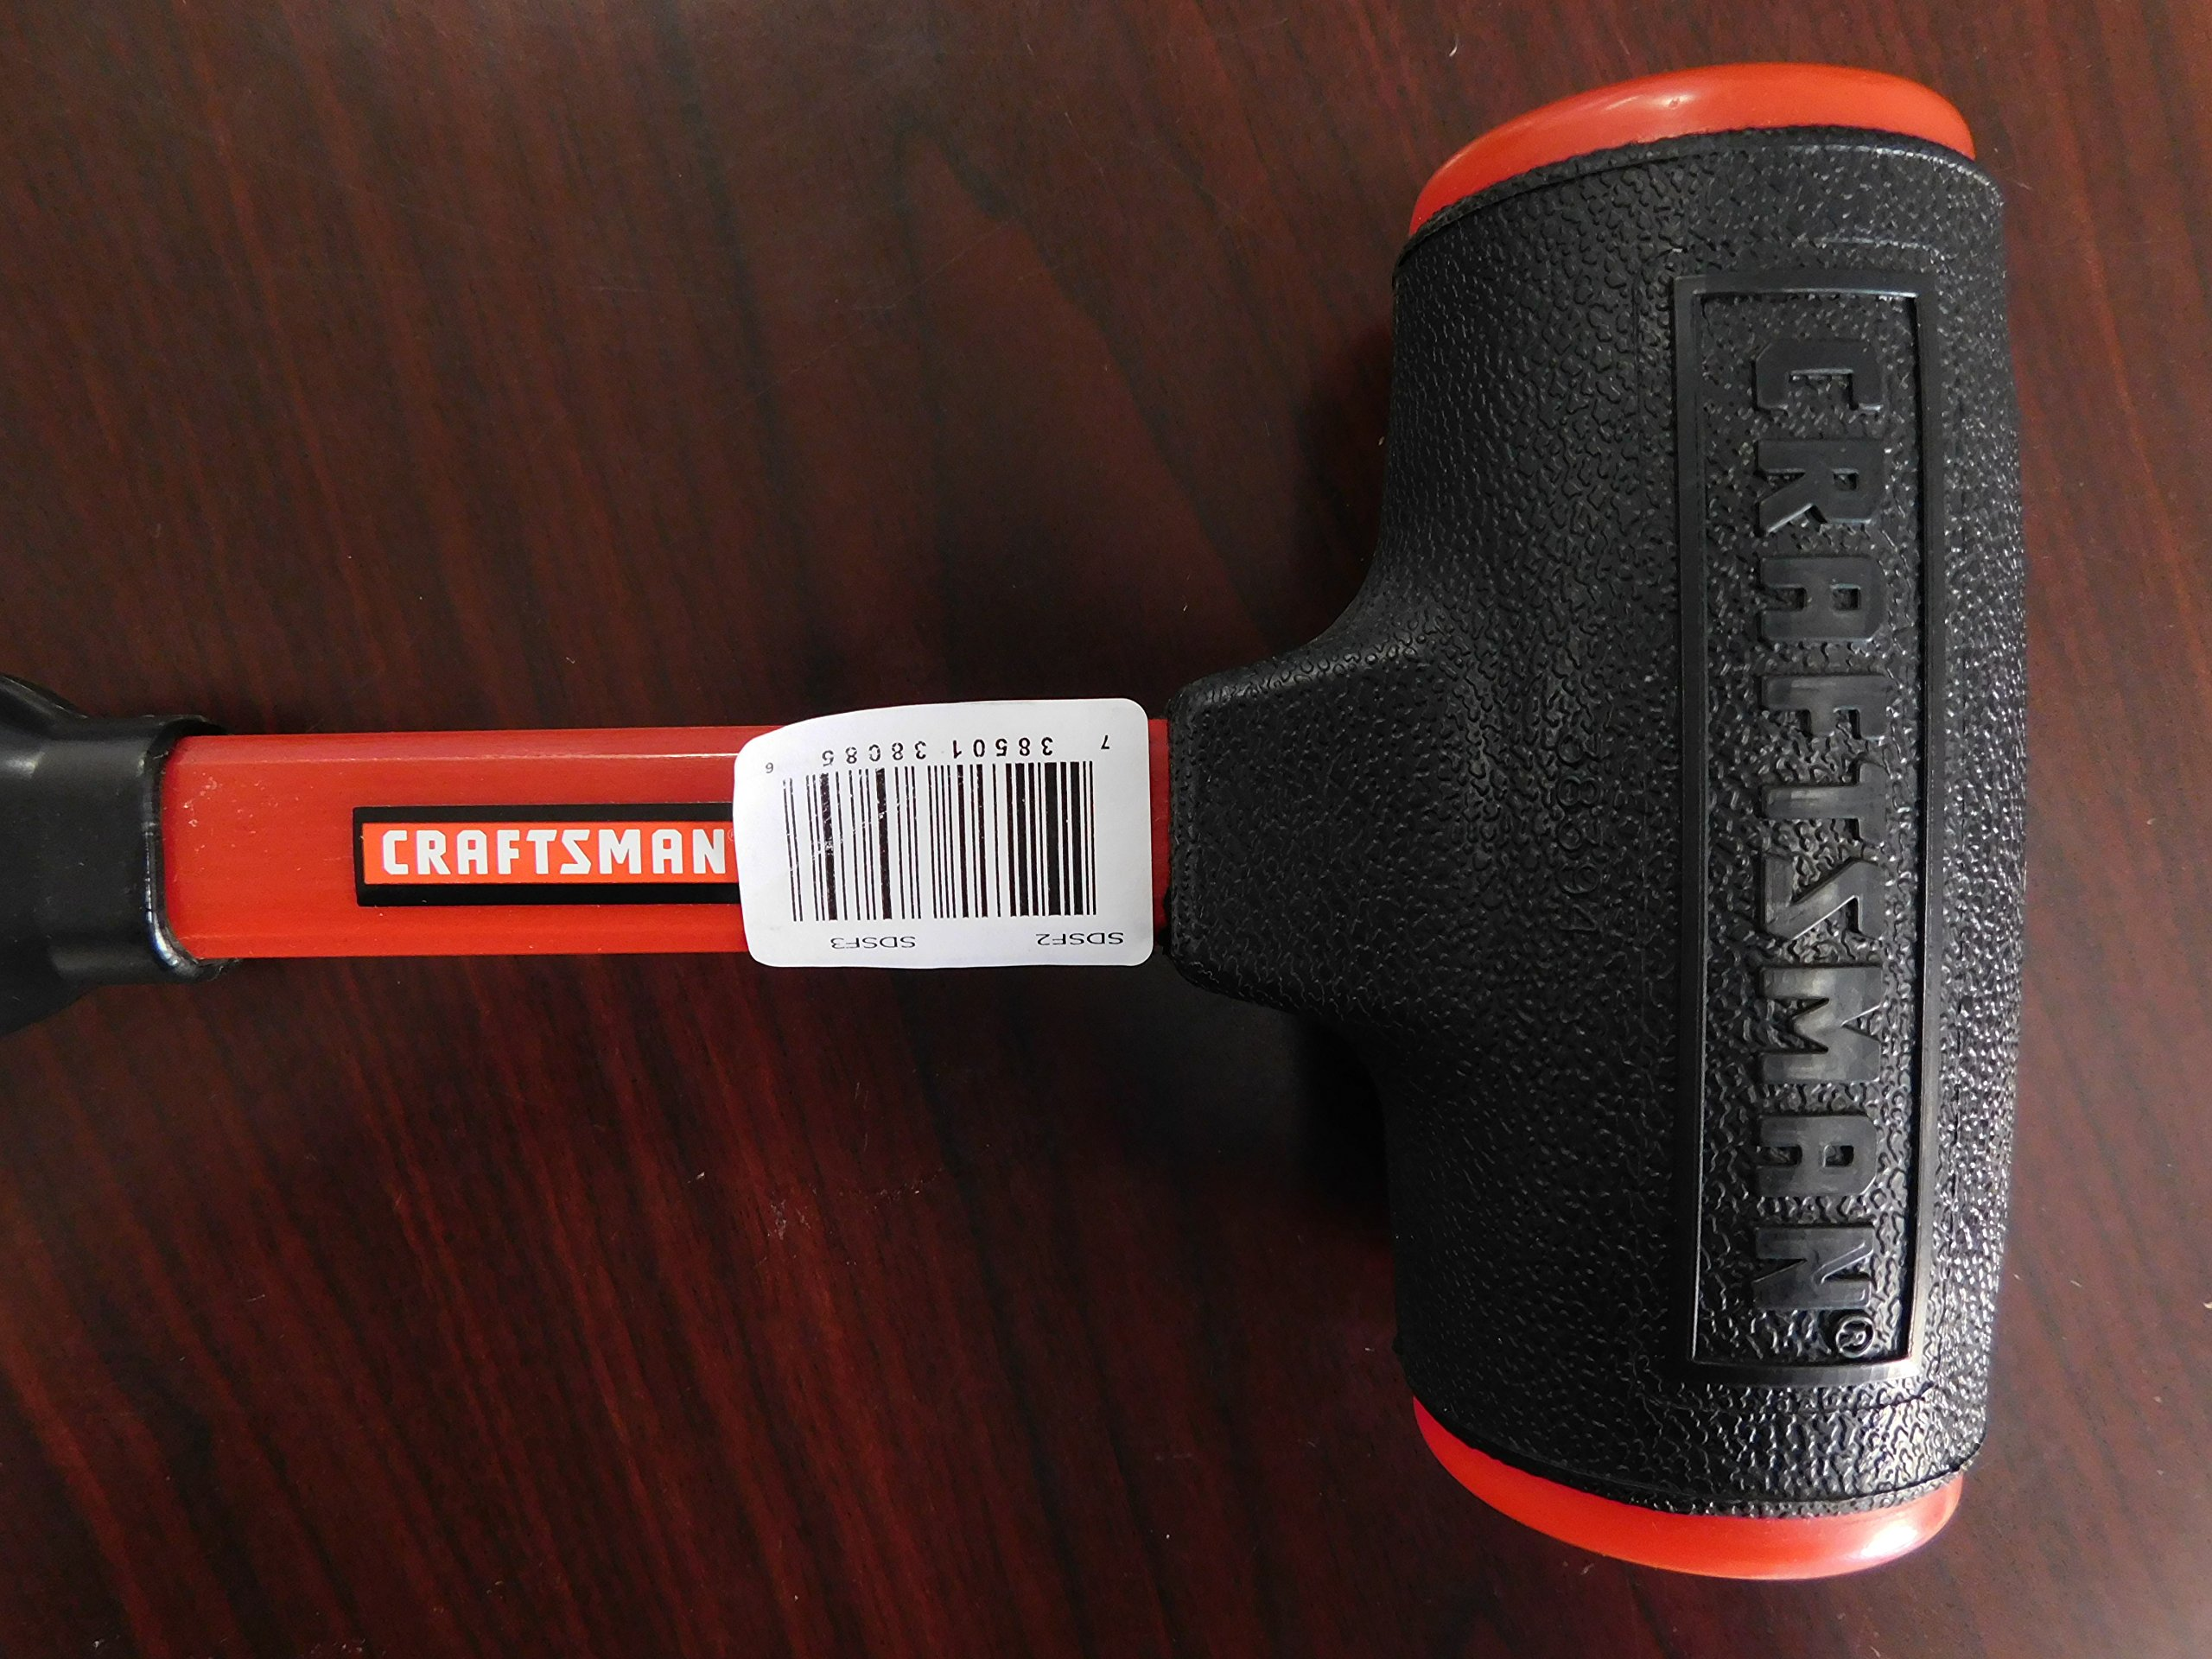 Craftsman 1-Pound Urethane Faced Dead Blow Hammer, Made in USA, Vintage/Rare, Part #938359 by Craftsman (Image #2)